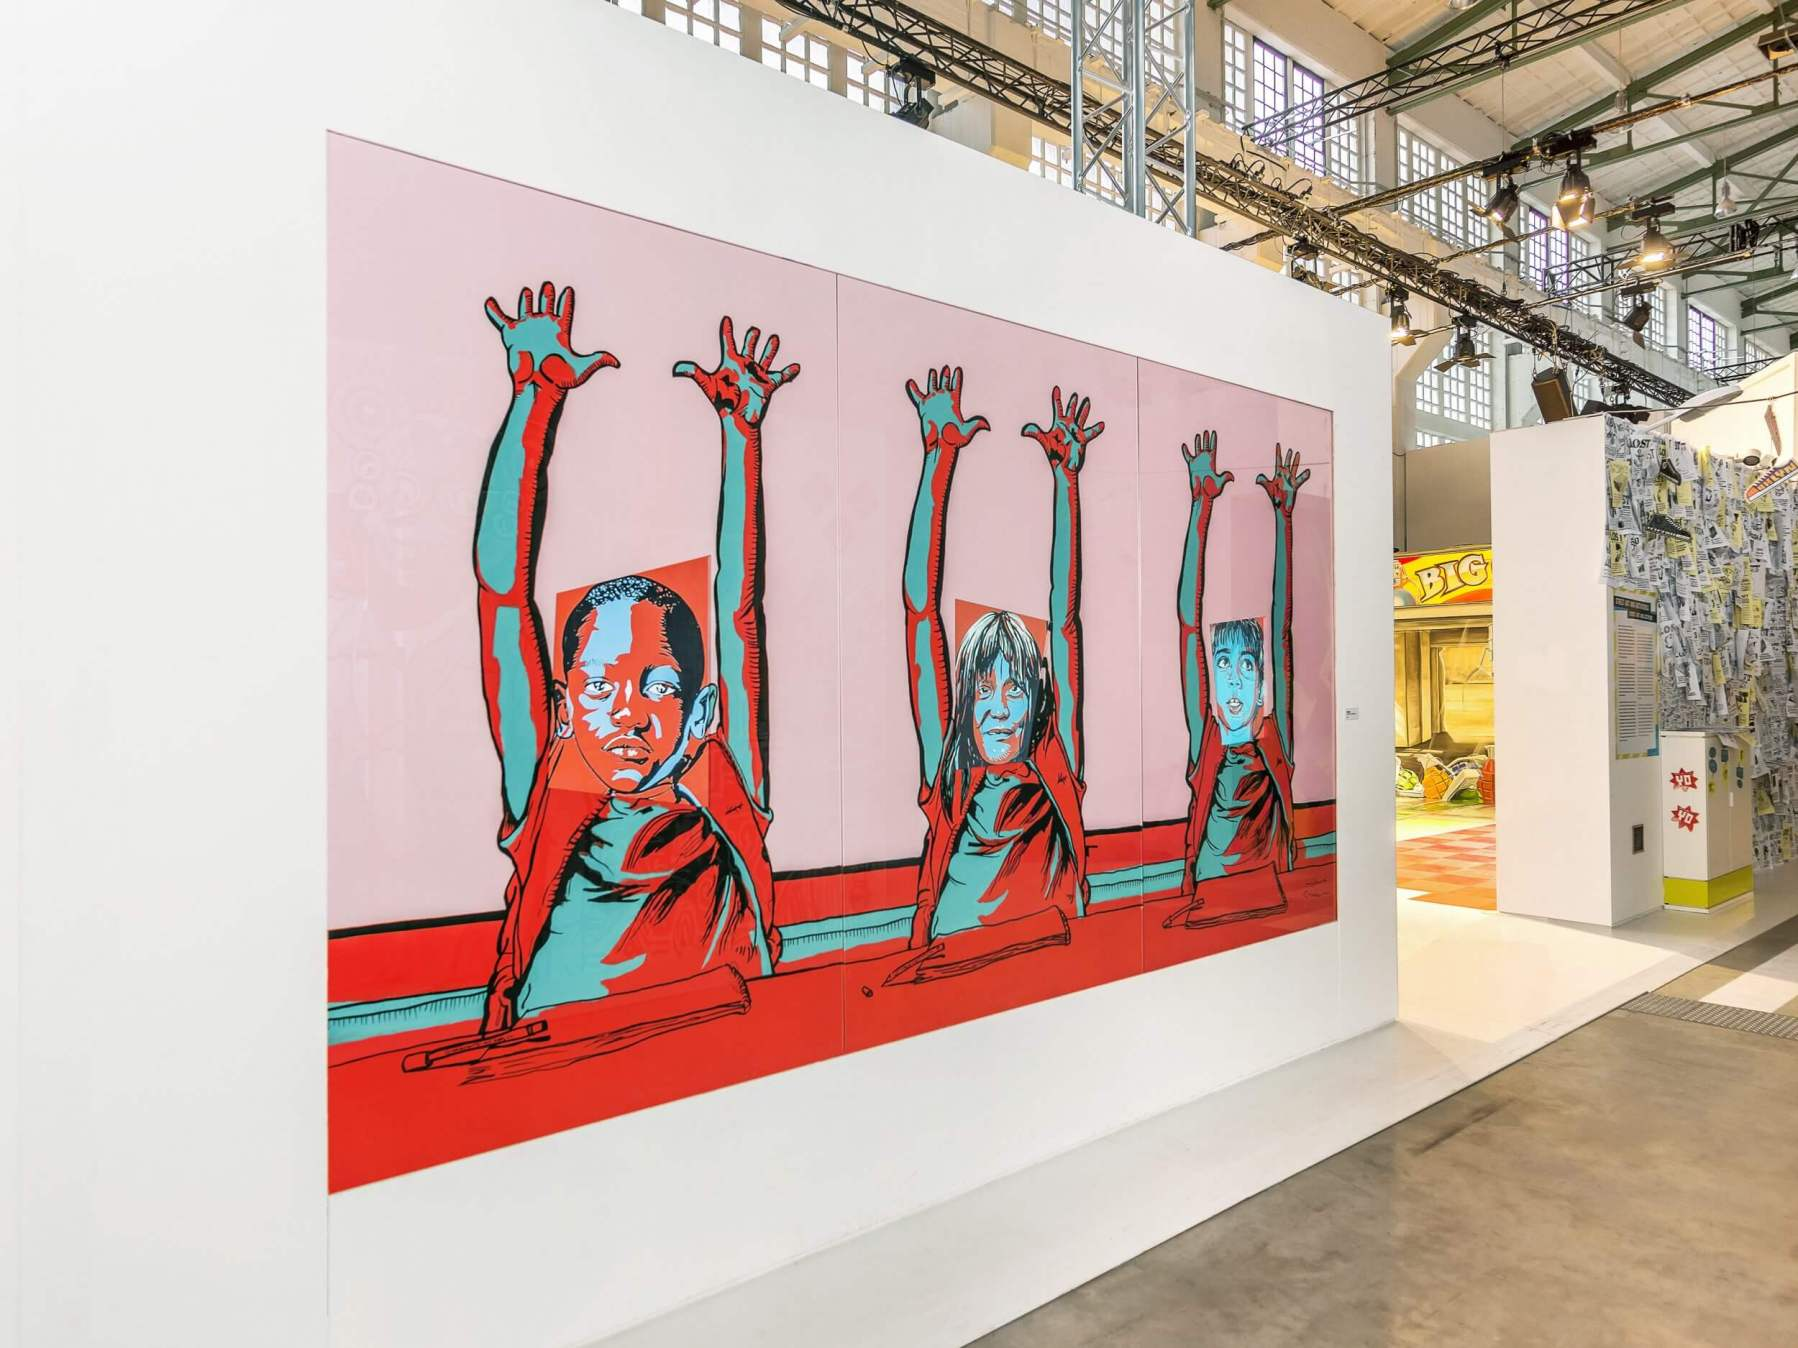 Ganzeer, Hands Up - Vol. 2, 2016. Acrylic on wood with animation on screen (photo by Rainer Christian Kurzeder).